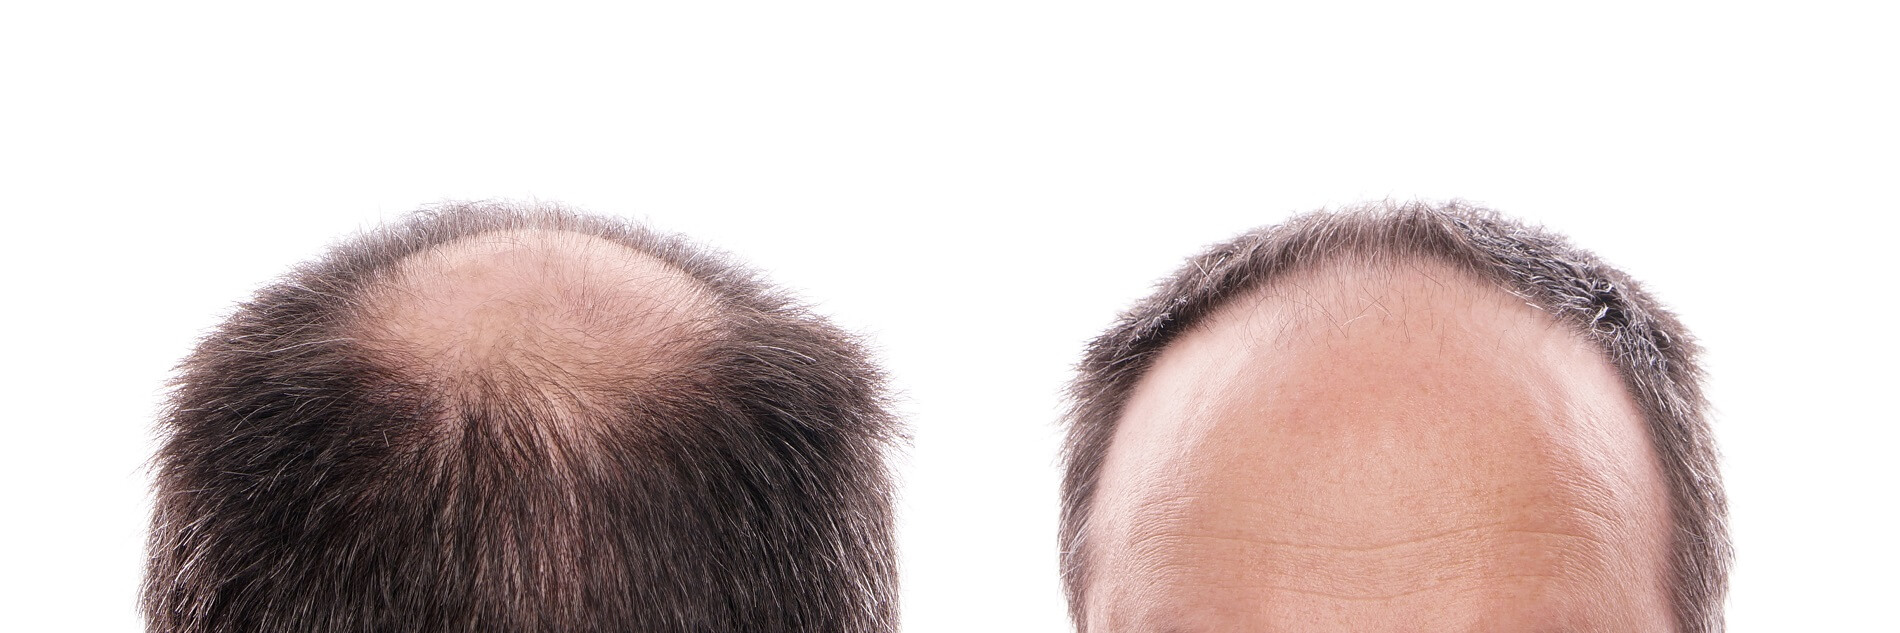 Hair Transplantation  in Mexico